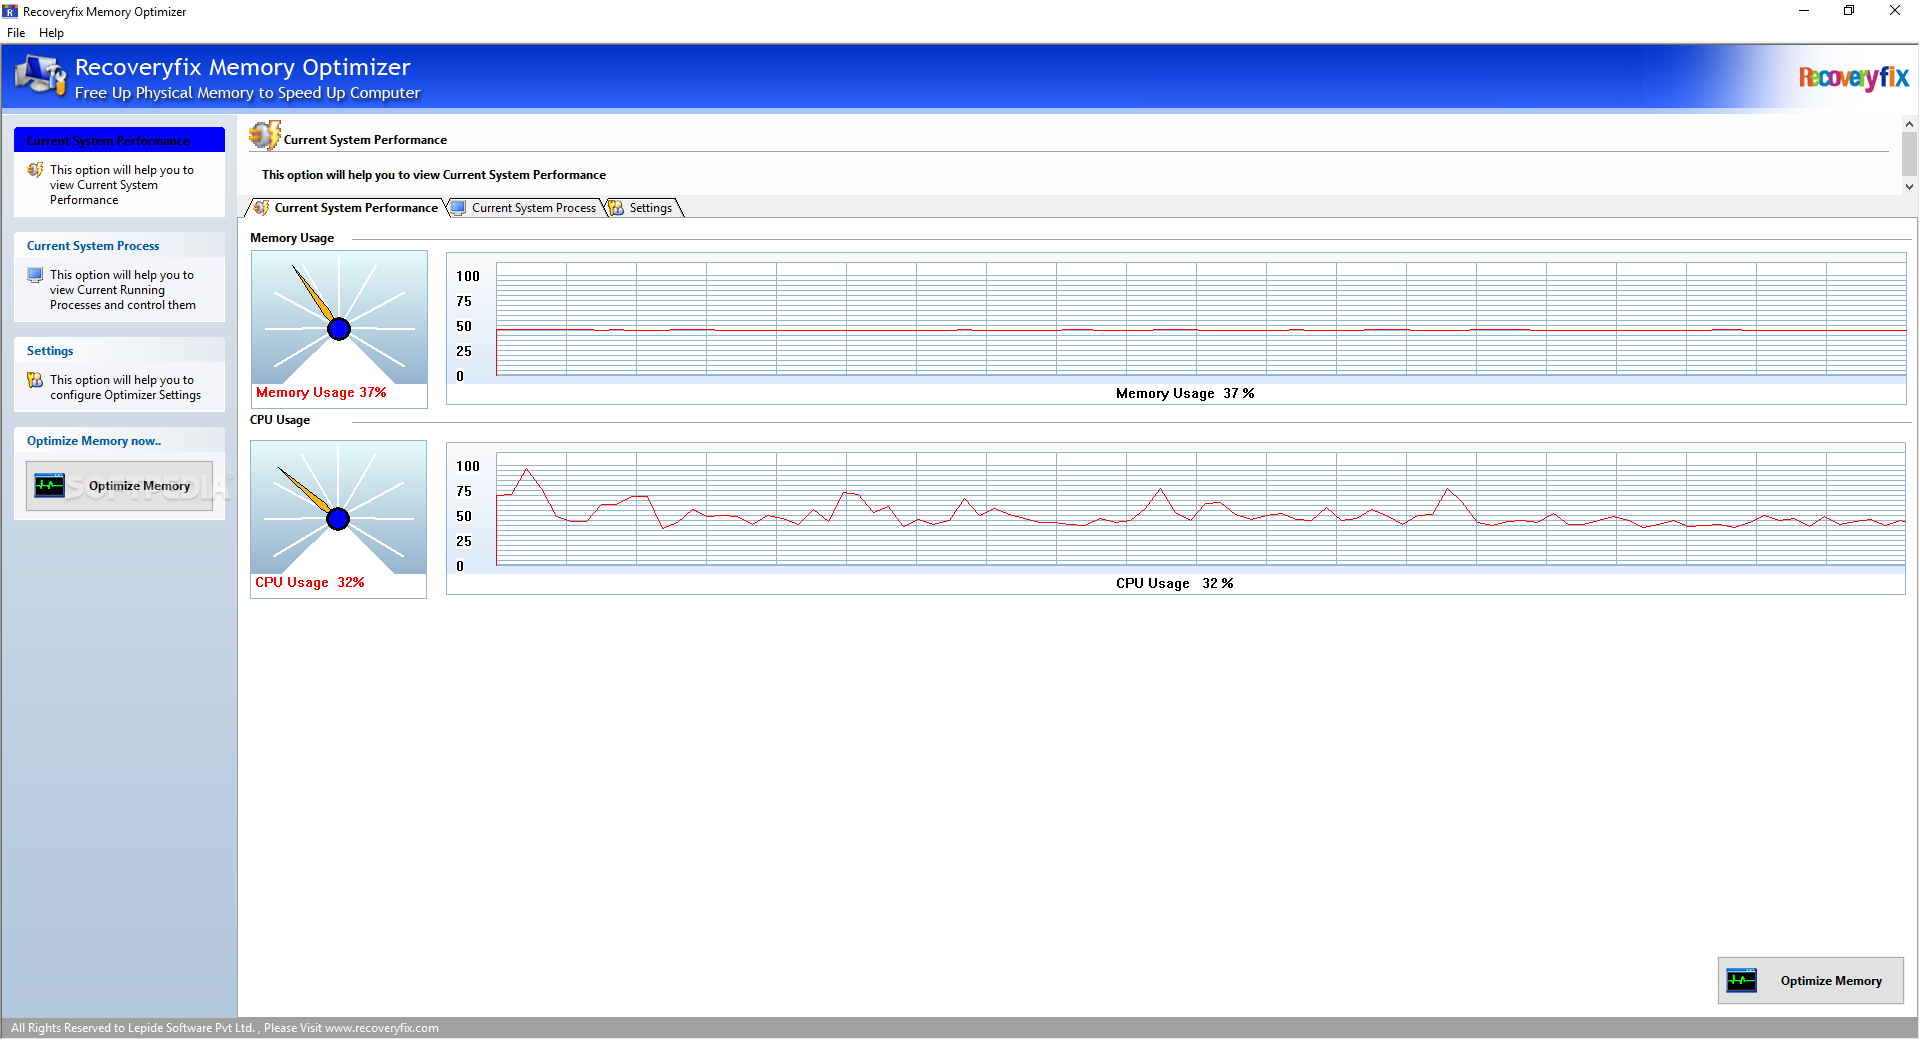 Recoveryfix Memory Optimizer (formerly Chily Memory Optimizer)